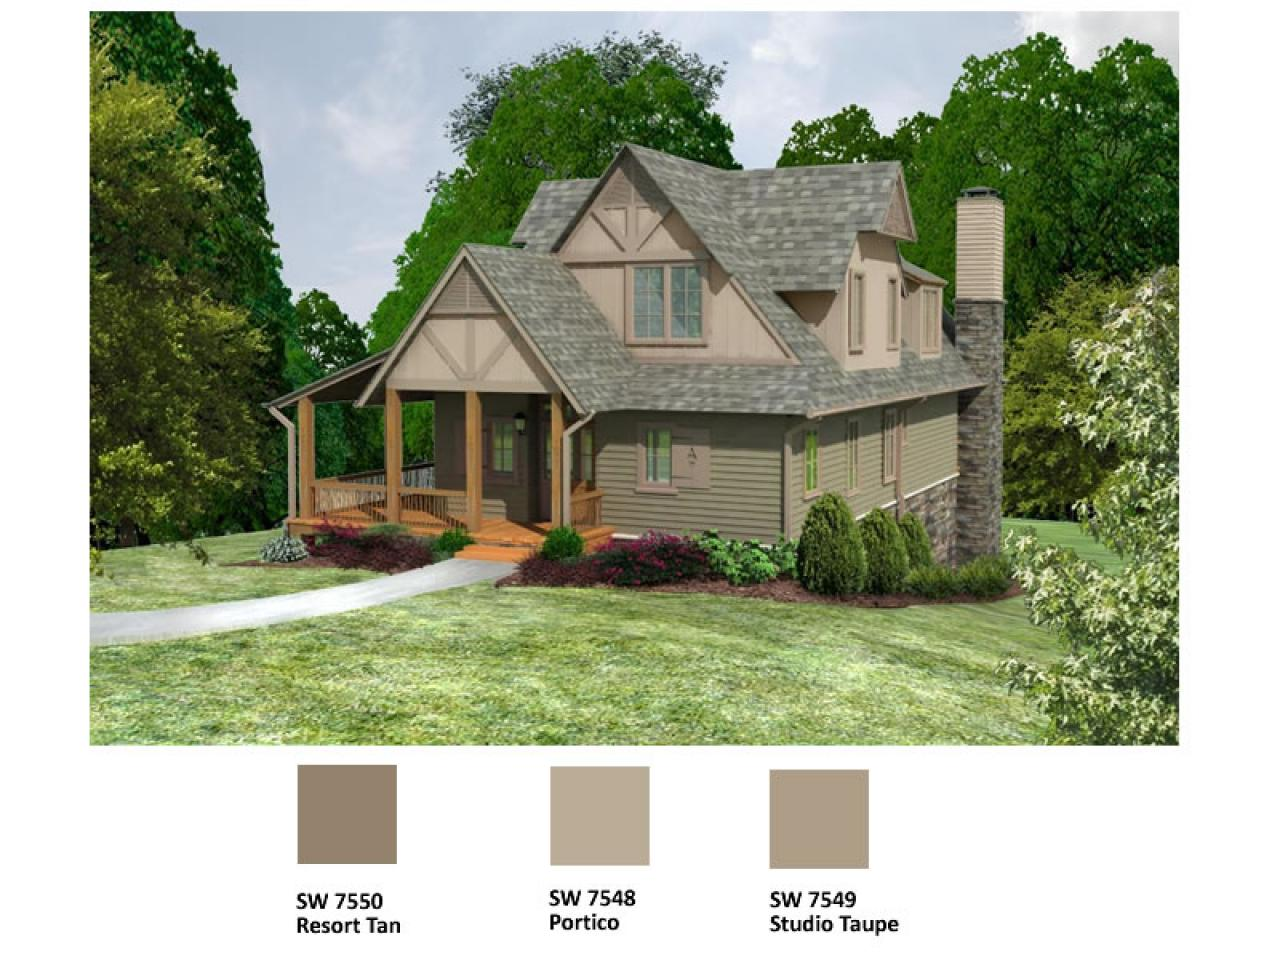 Blog Cabin 2009 Flooring And Exterior Paint Color Voting